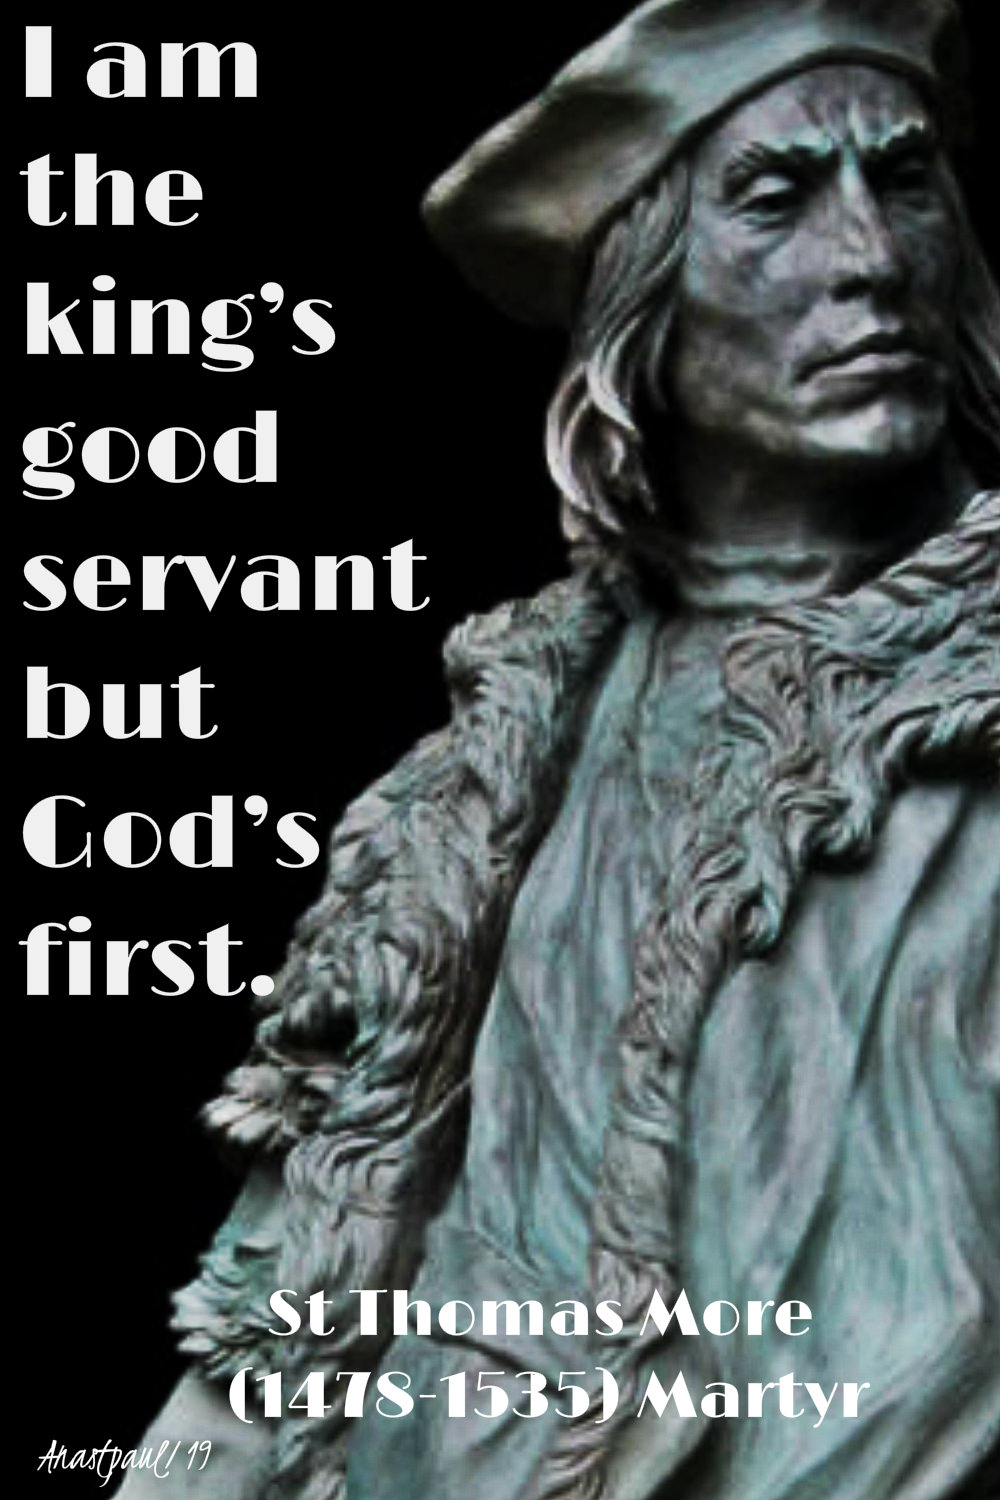 i am the kings good servant but god's first - st thomas more 29 jan 2019